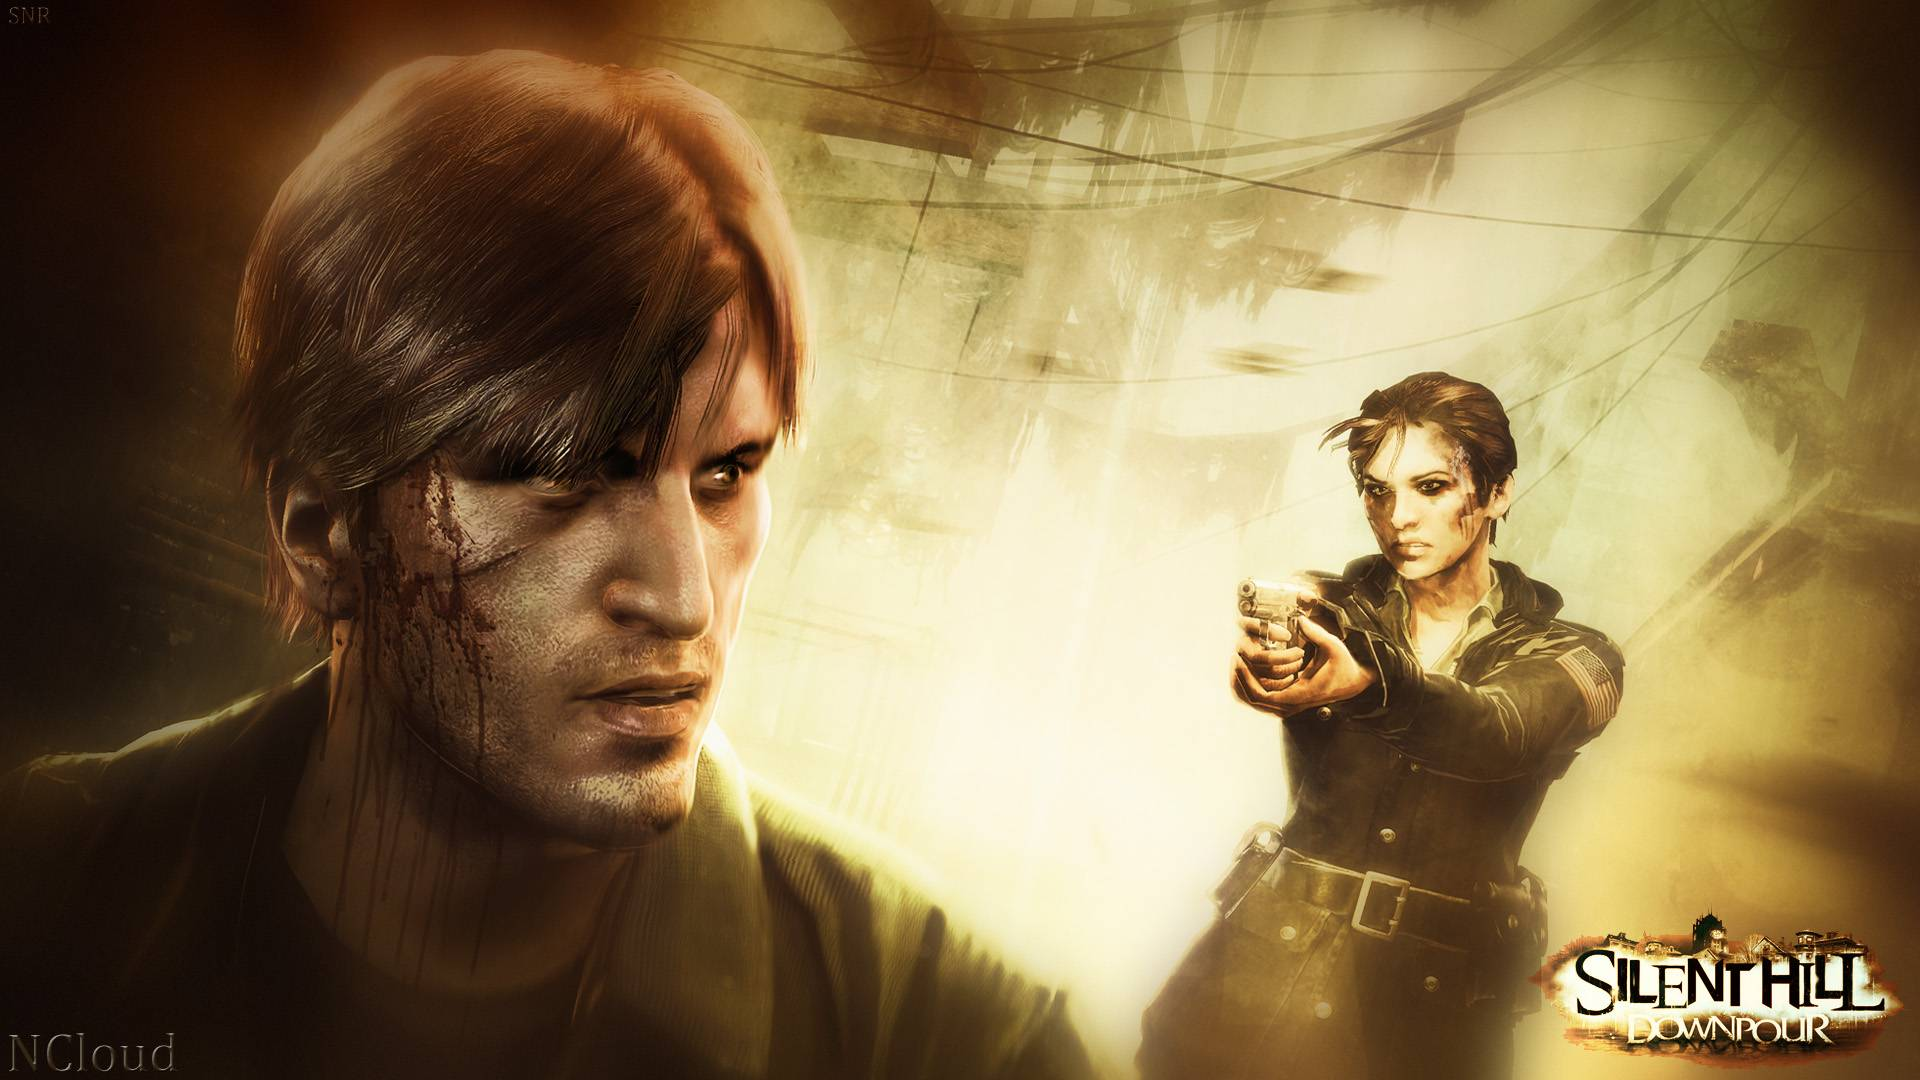 Picture 3111 « Silent Hill Downpour Wallpapers in HD - GamingBolt ...